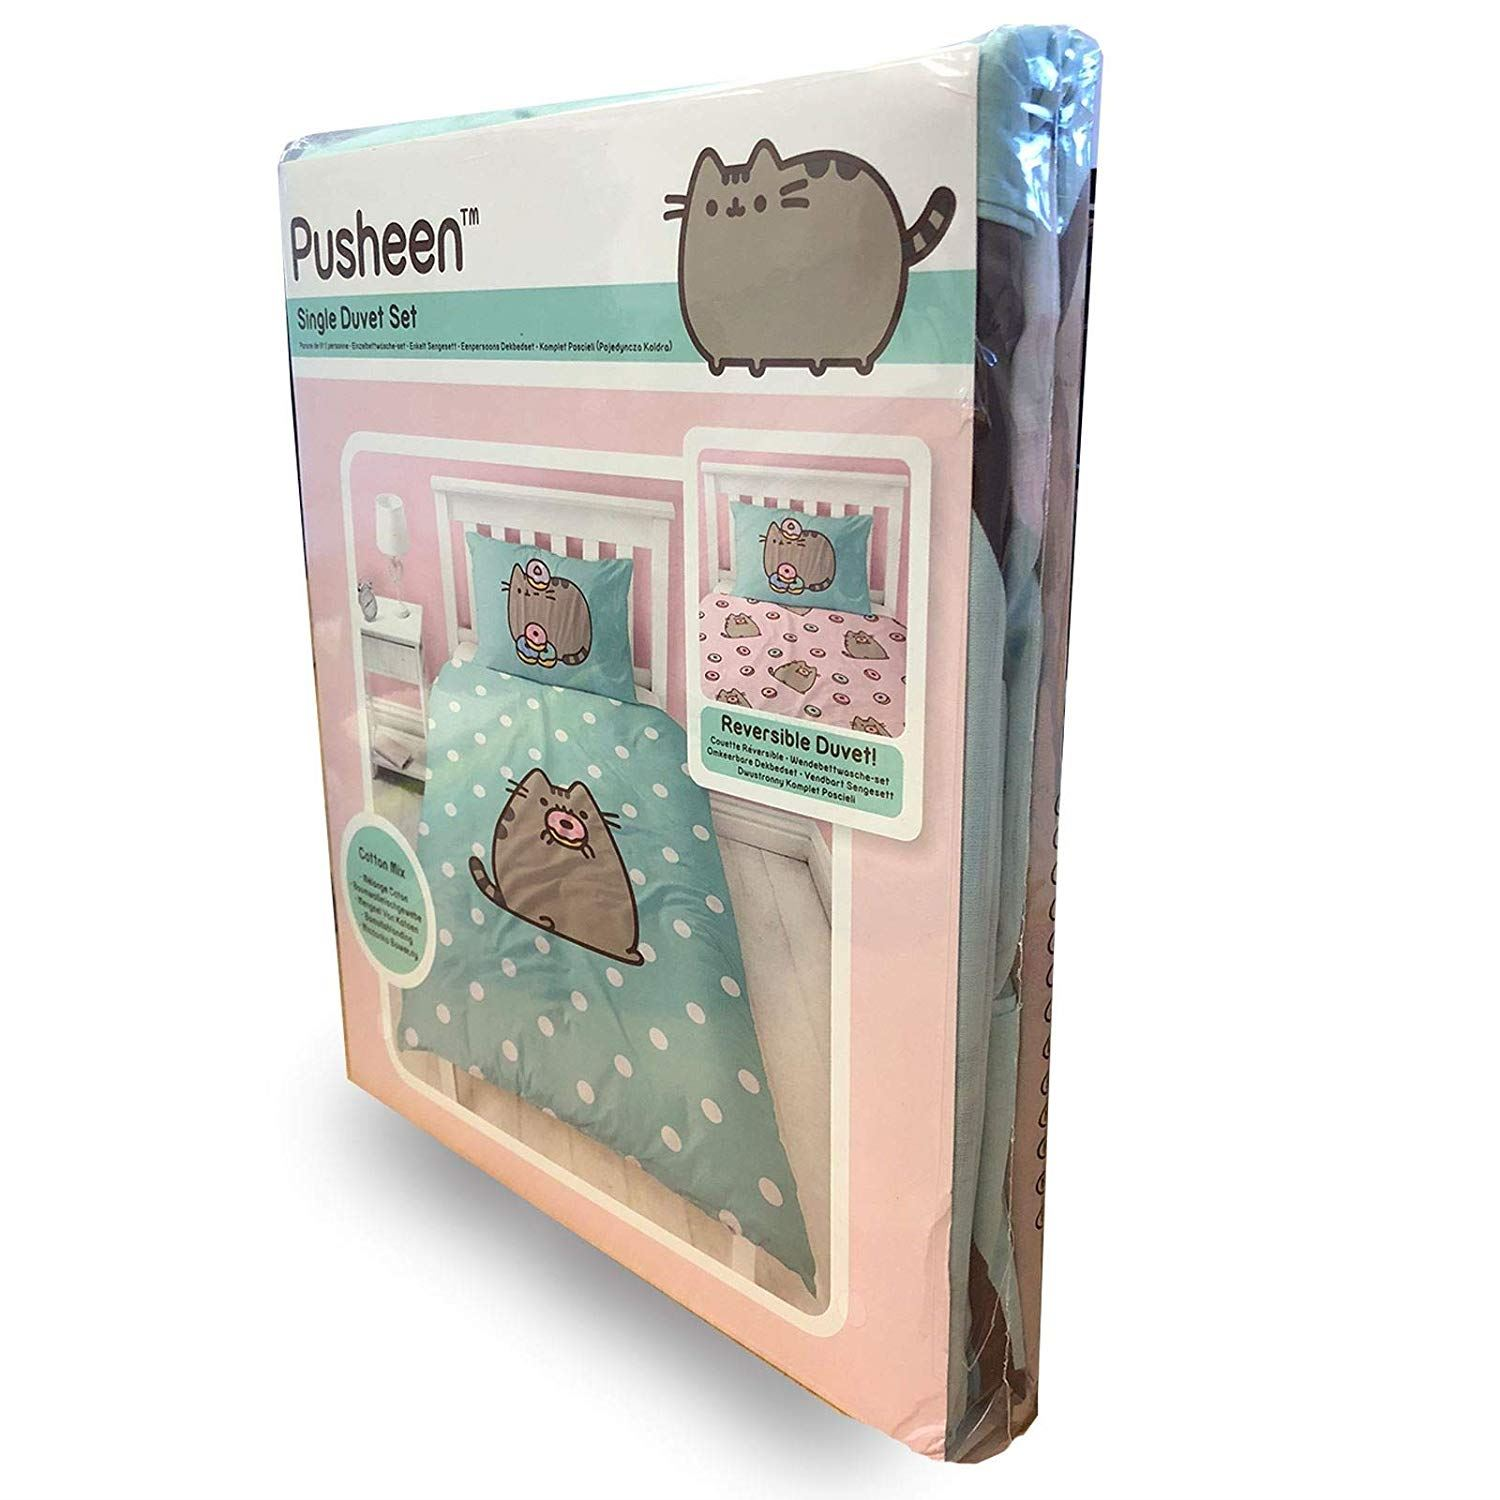 Pusheen-Doughnut-Single-Double-Reversible-Duvet-Cover-Bedding-Set thumbnail 9